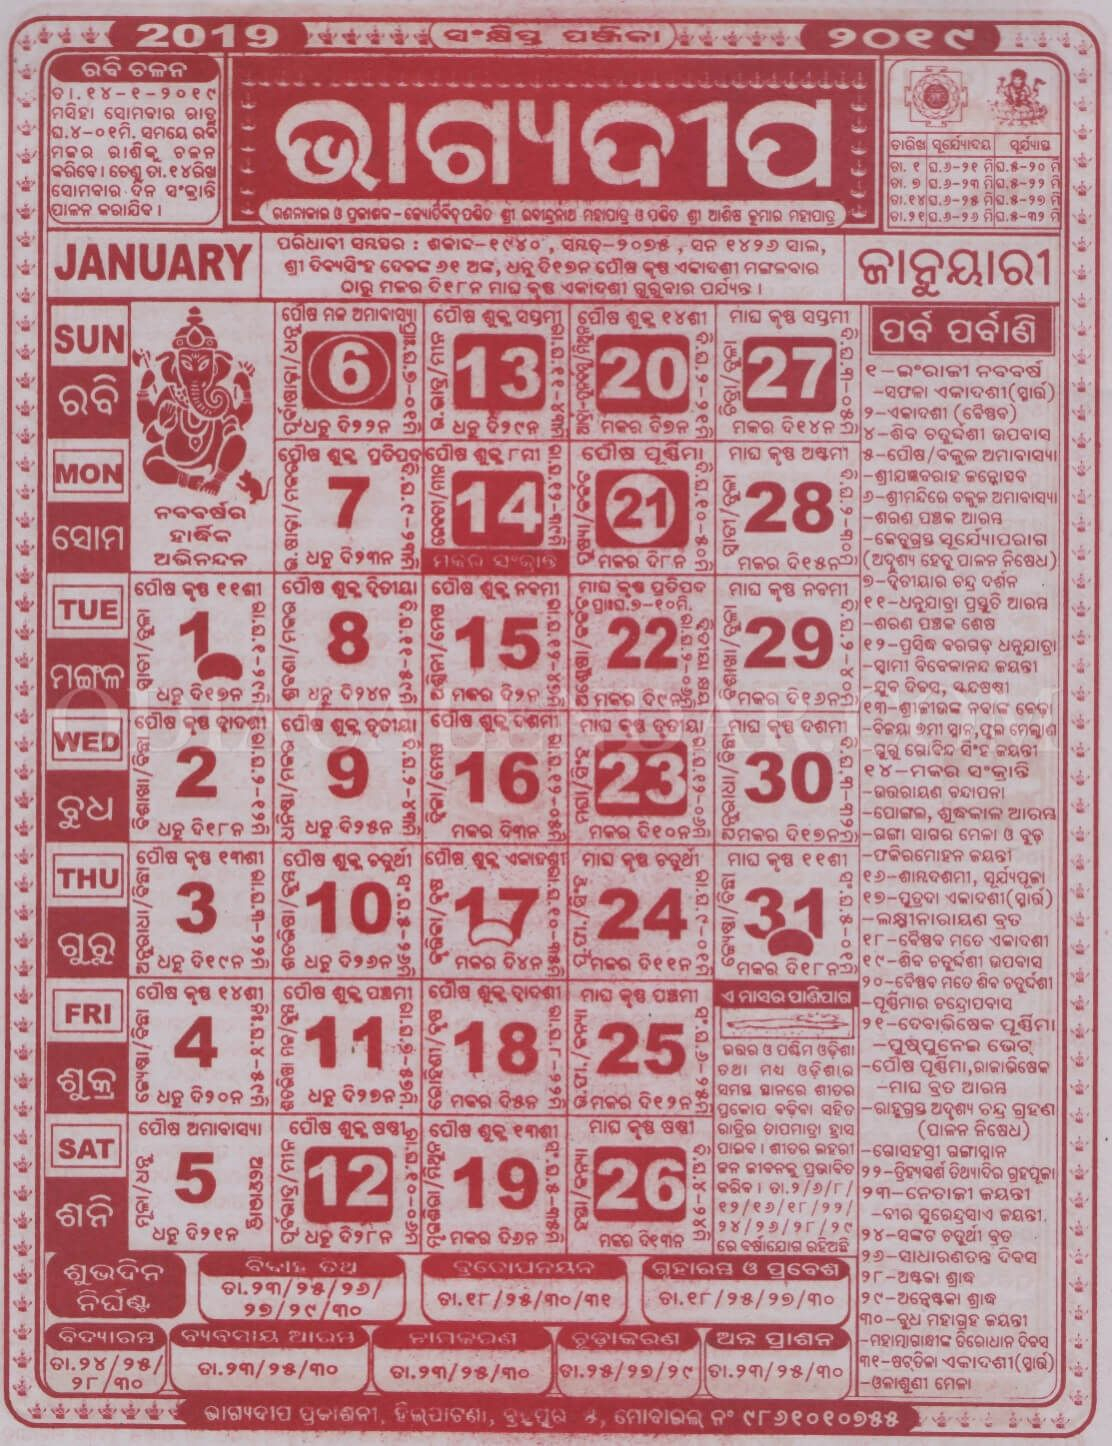 Bhagyadeep Calendar January 2019 | Calendar, Free, High pertaining to Bhagyadeep Odia Calendar 2020